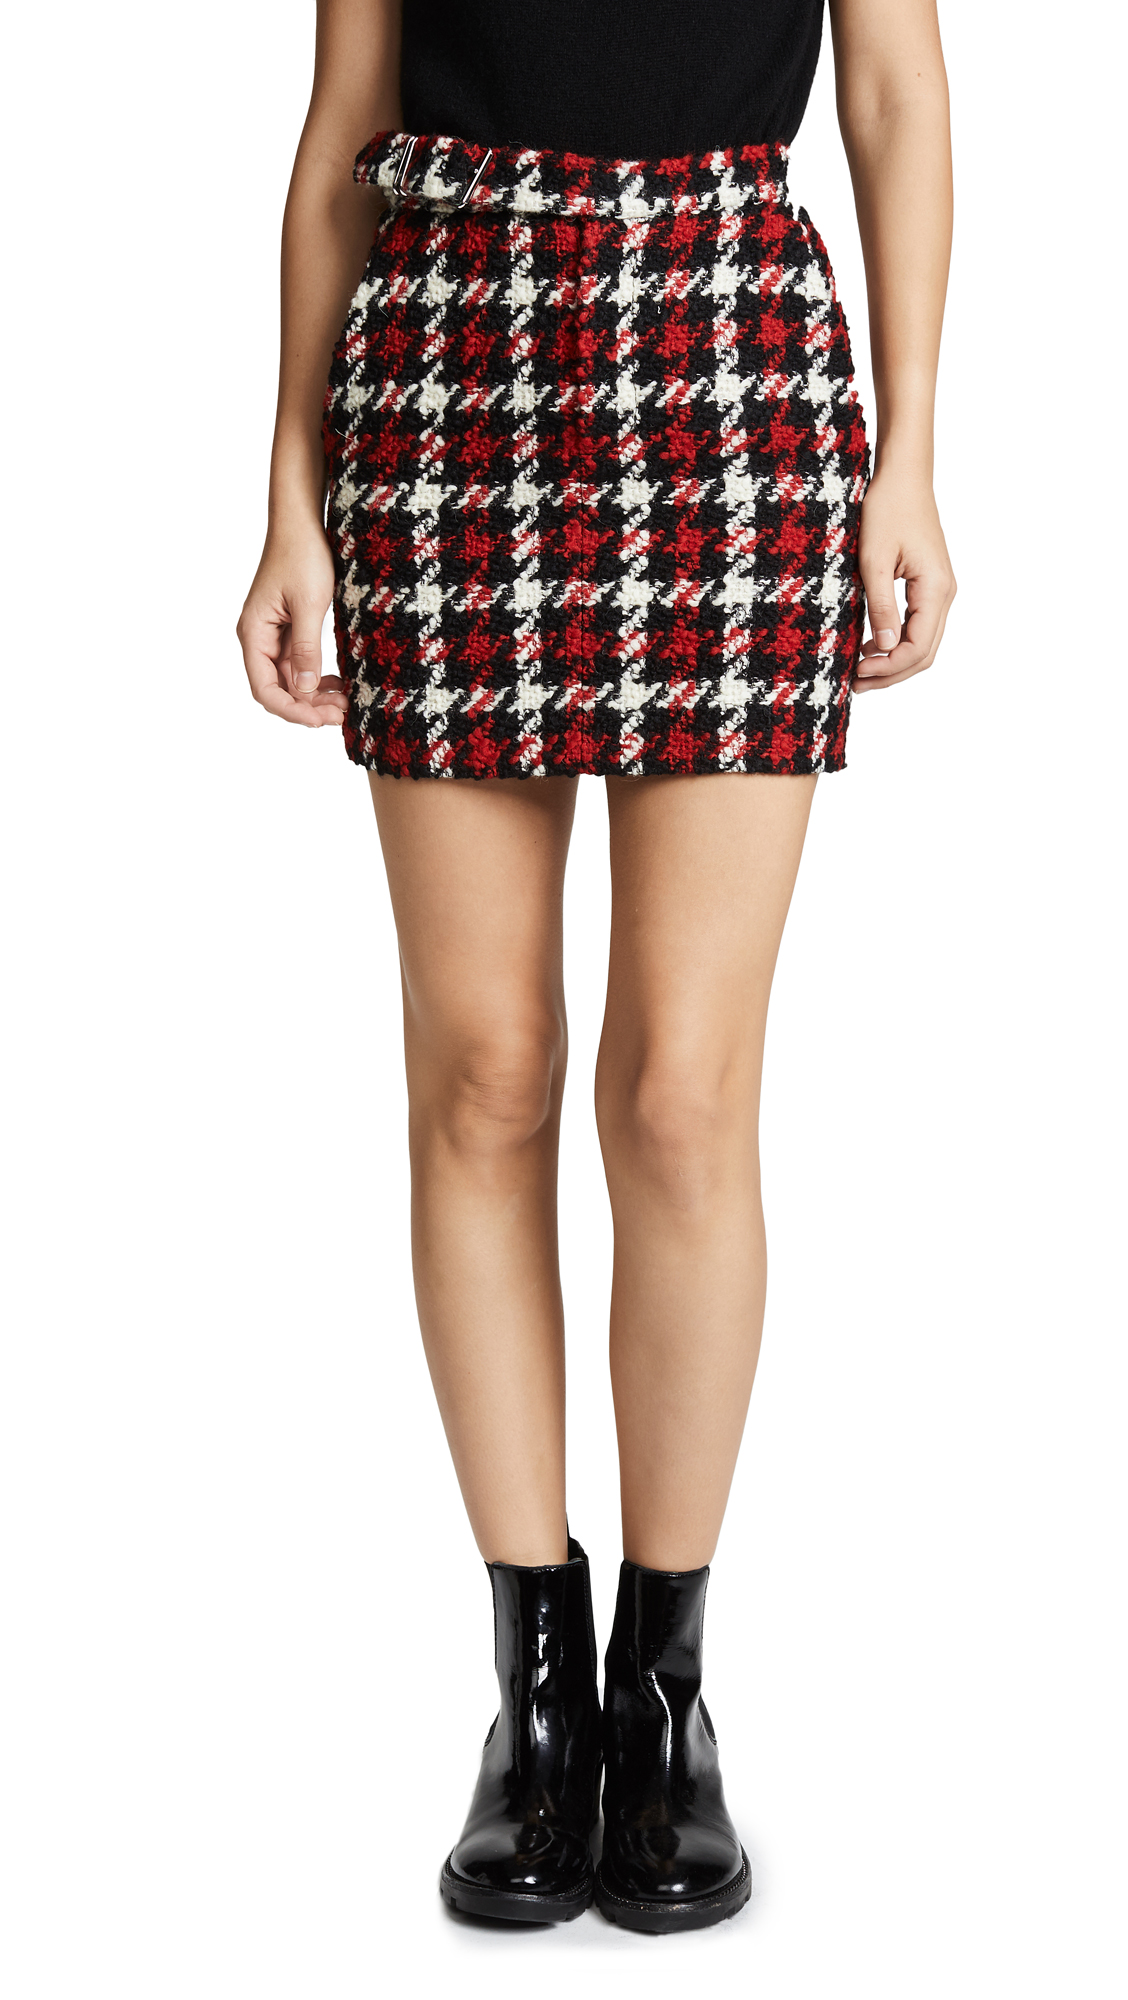 McQ - Alexander McQueen Belted Mini Skirt In Small Check